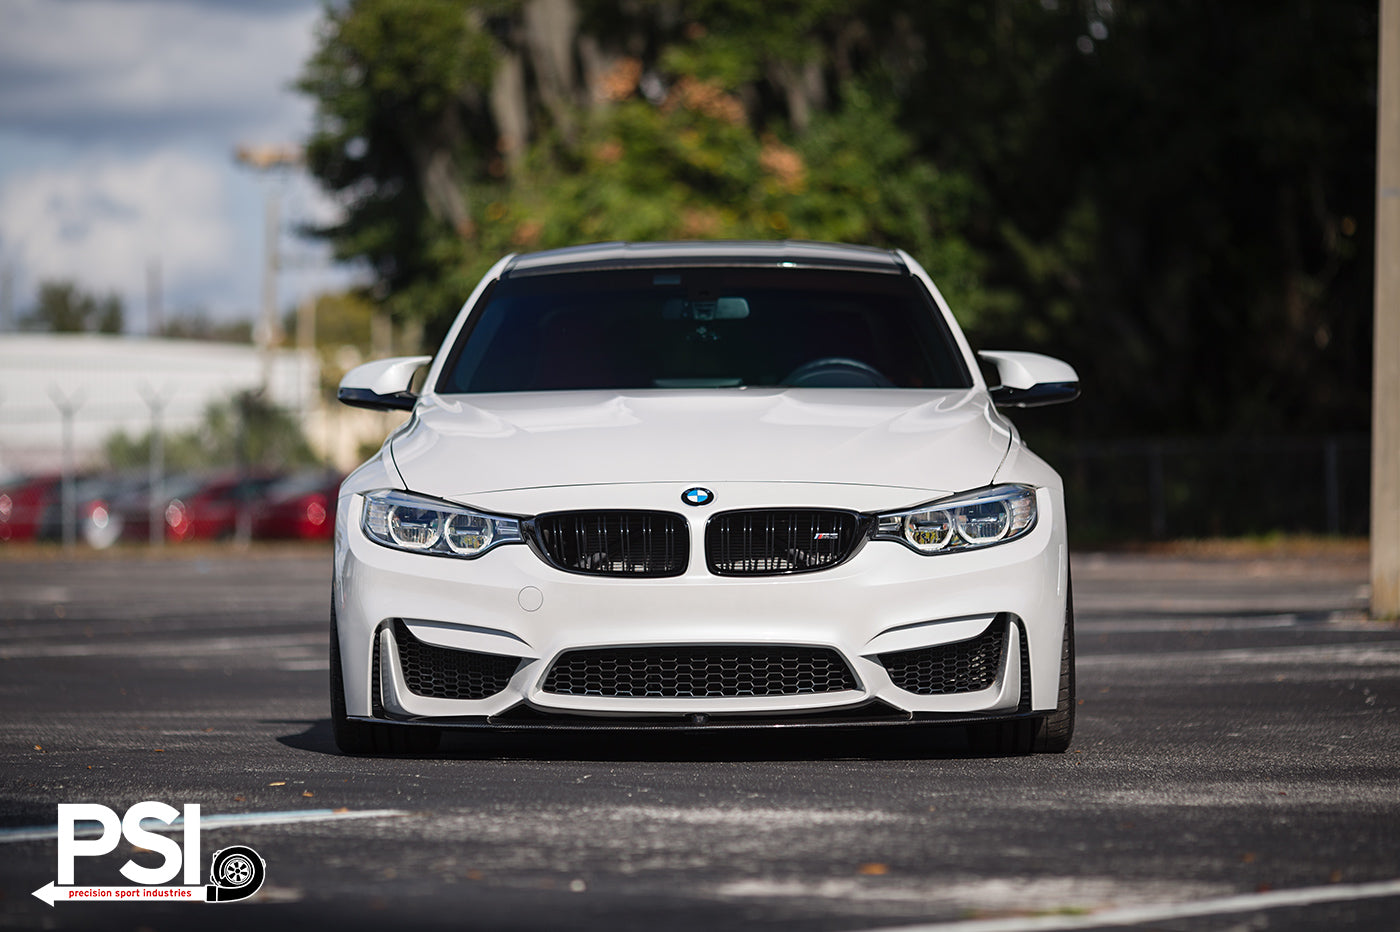 The Obsessed Garage F80 M3 by PSI